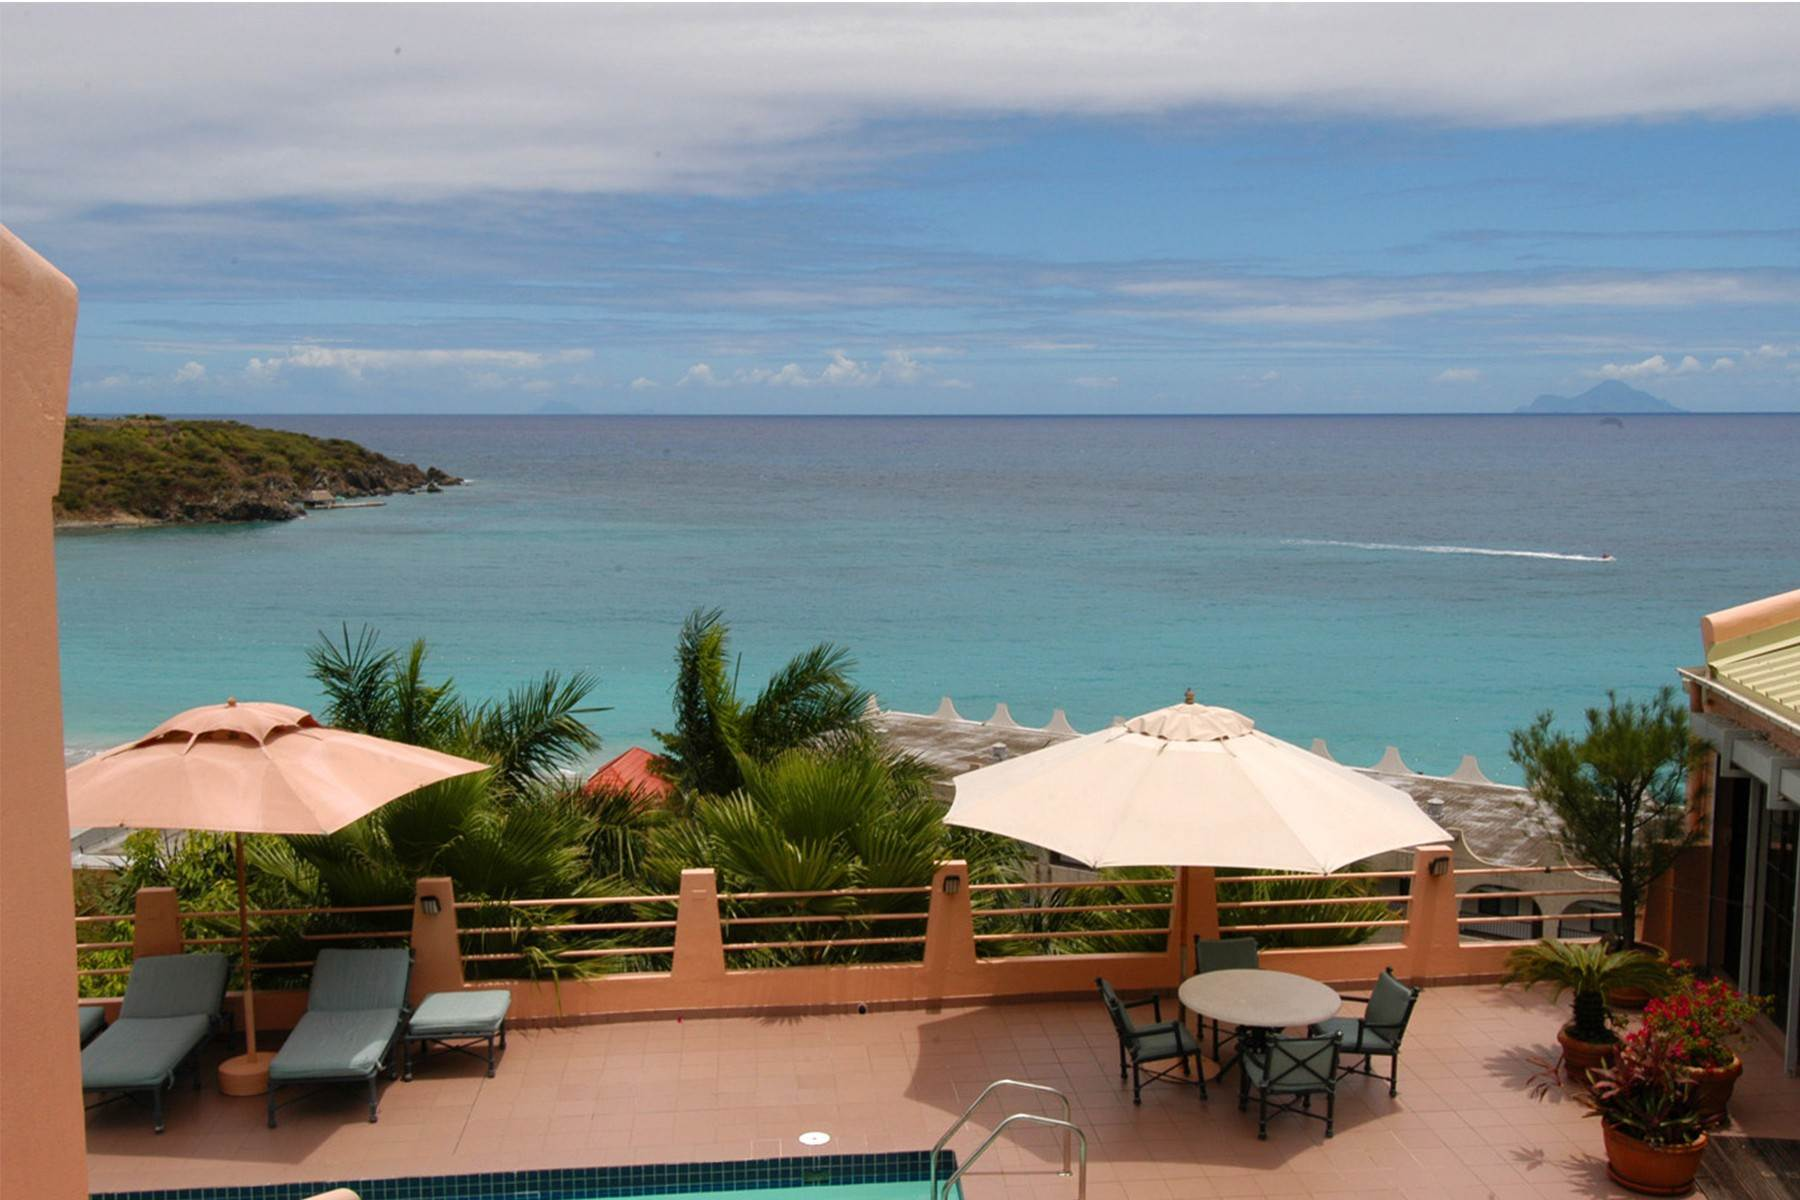 Single Family Homes for Sale at Belair View Belair, St. Maarten